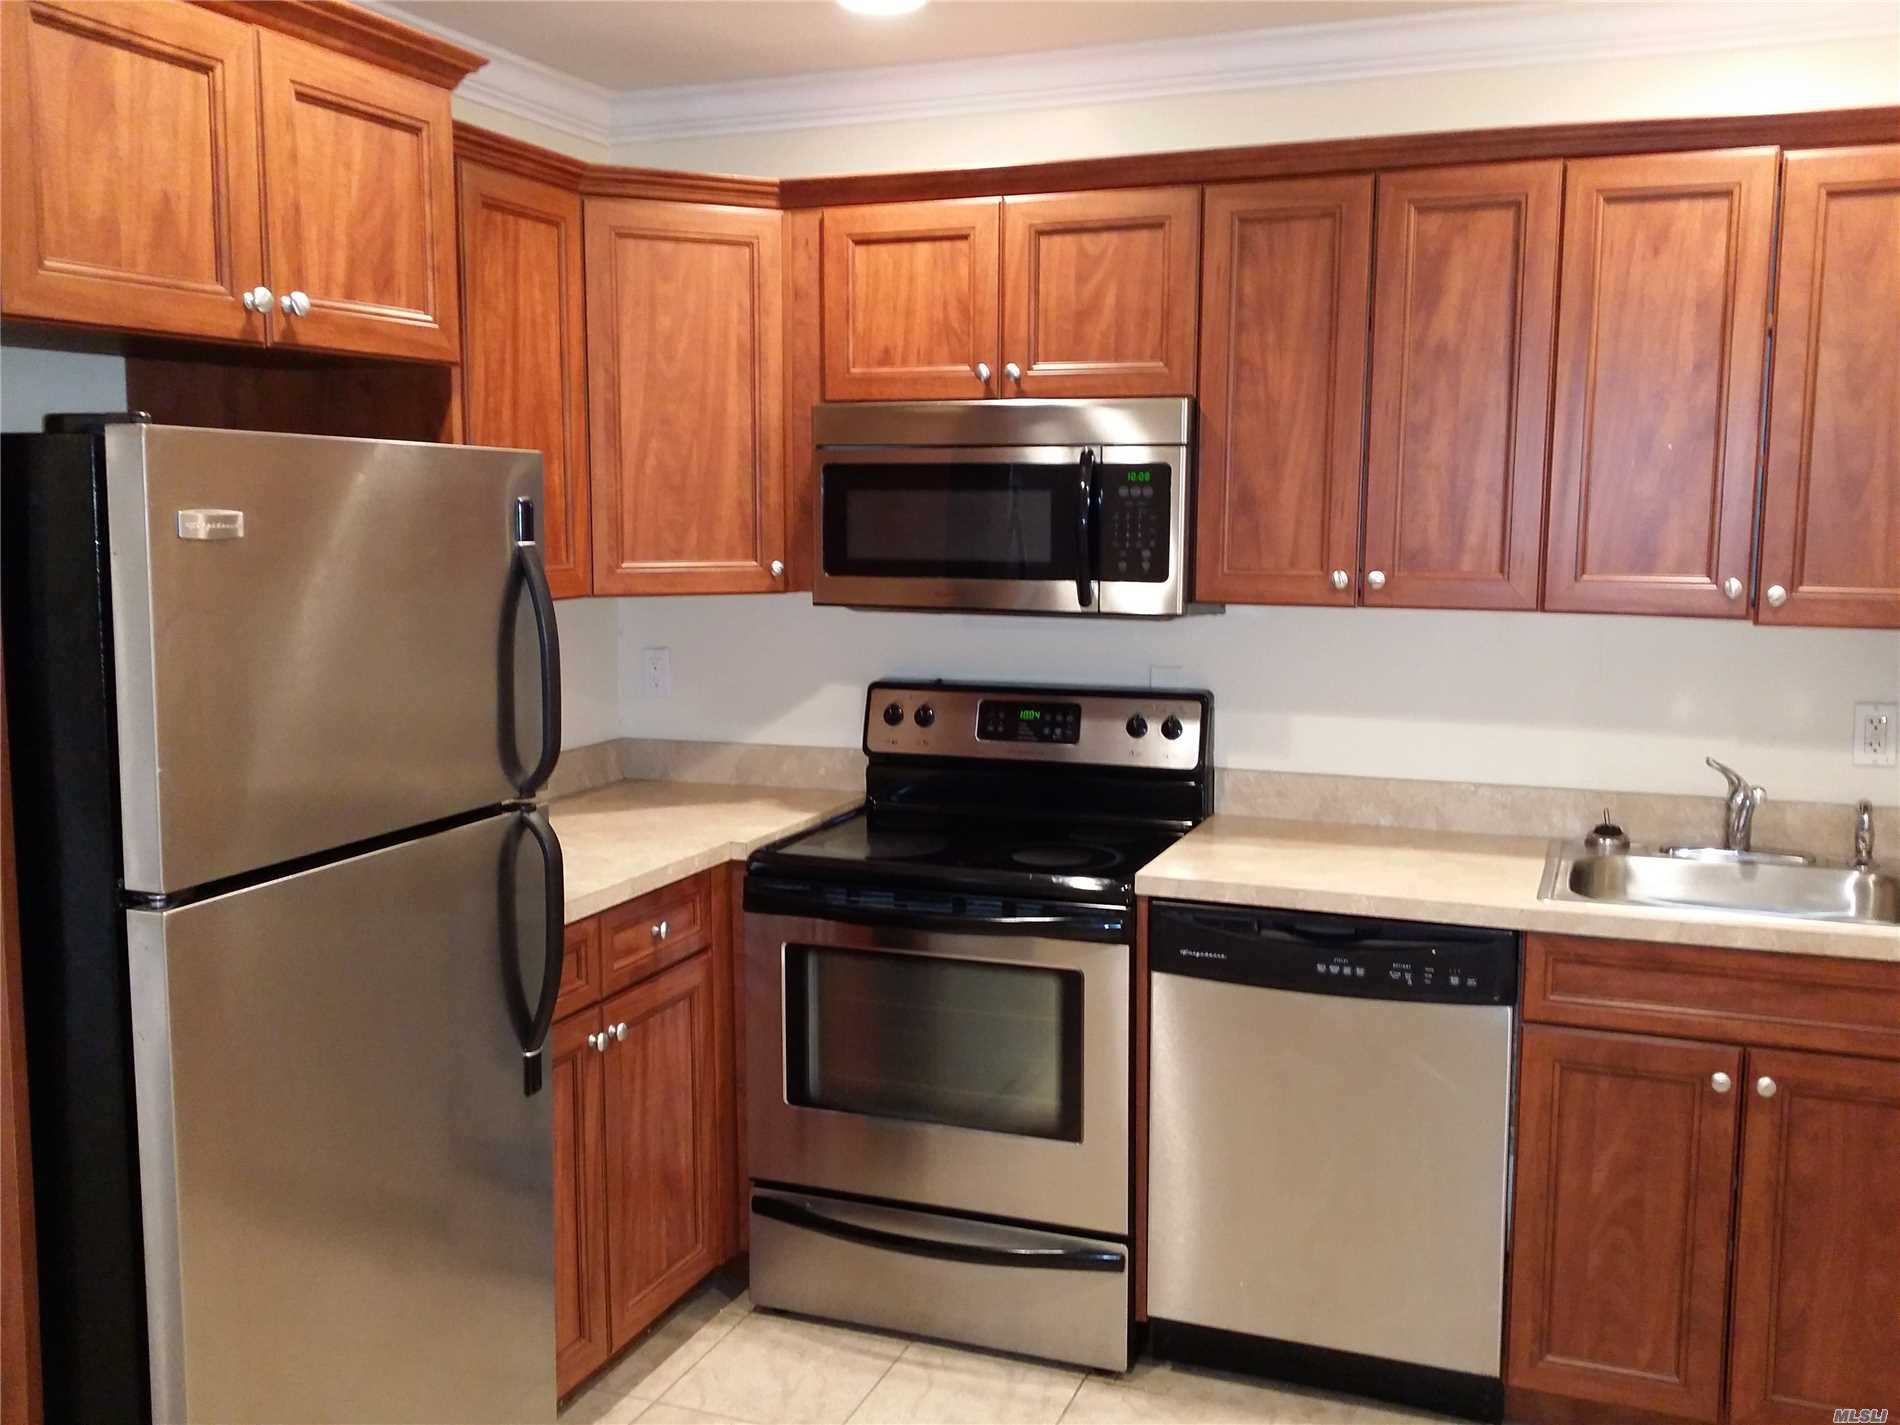 Villa Style, Single Story Luxury Studio, 1 & 2 Bedrooms.New Kitchens With Tuscan Style Cabinetry W/ Stls Stl Appl Including Dishwasher & Microwave, A/C.Minutes From Lirr.Walk To Shopping, Library, Heckscher Park & Connetquot State Park.Convenient To Sunrise Hwy, Montauk Hwy And Southern State Pkwy.Prices/policies subject to change without notice.